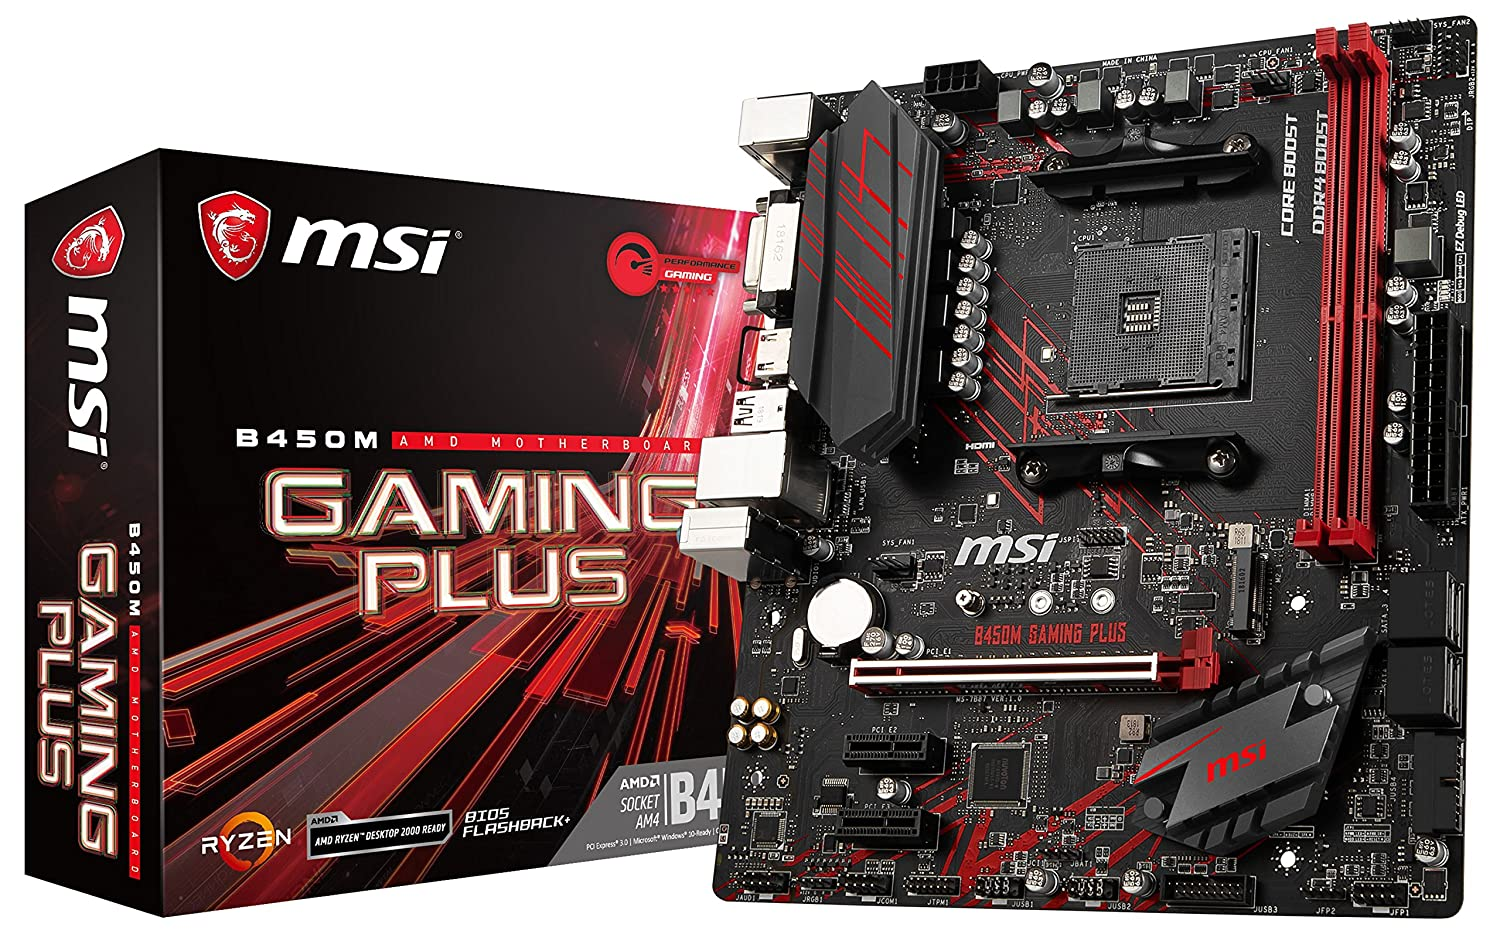 MSI Performance Gaming AMD Ryzen 1st and 2nd Gen AM4 M.2 USB 3 DDR4 DVI HDMI Micro-ATX Motherboard (B450M Gaming Plus), mATX